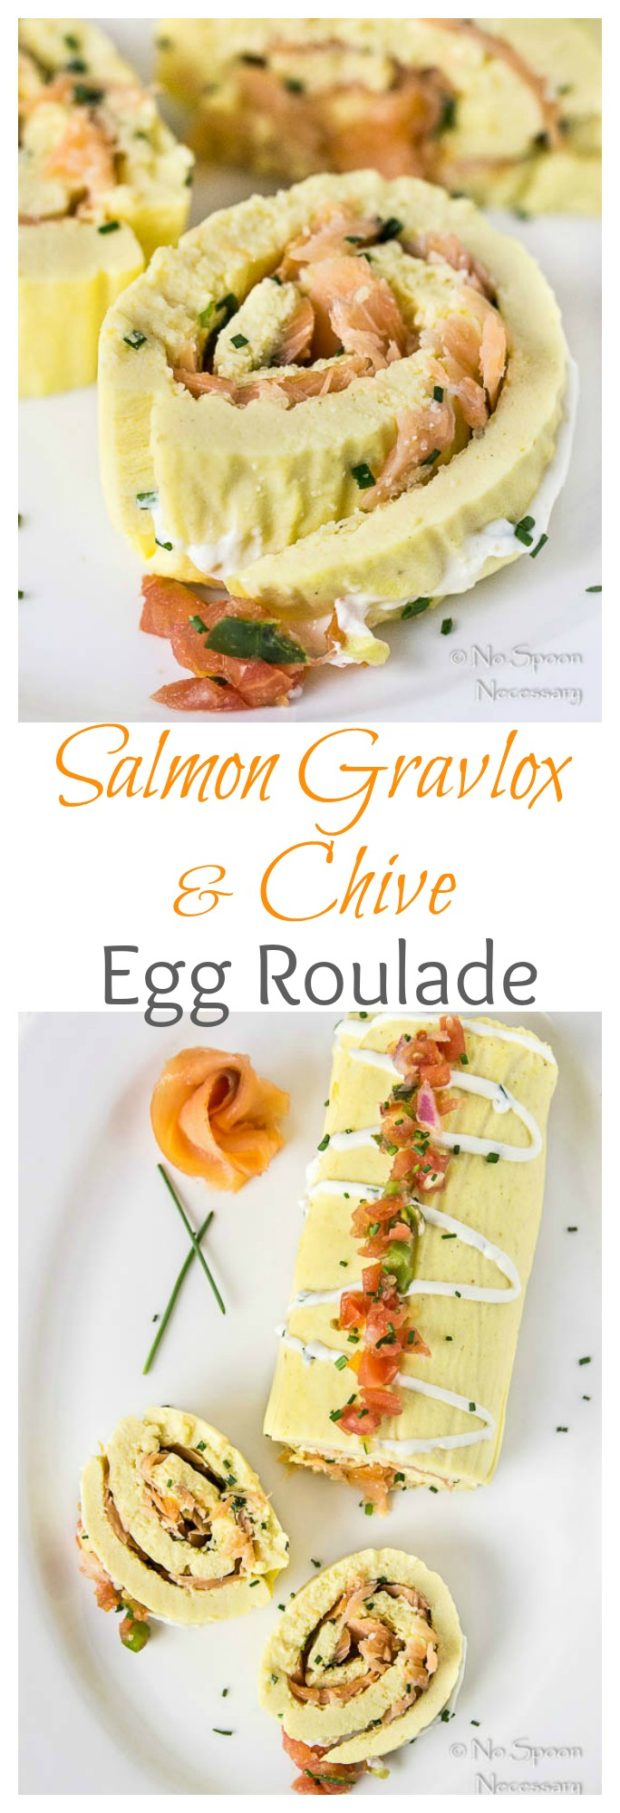 Gravlox & Chive Egg Roulade-long pin1